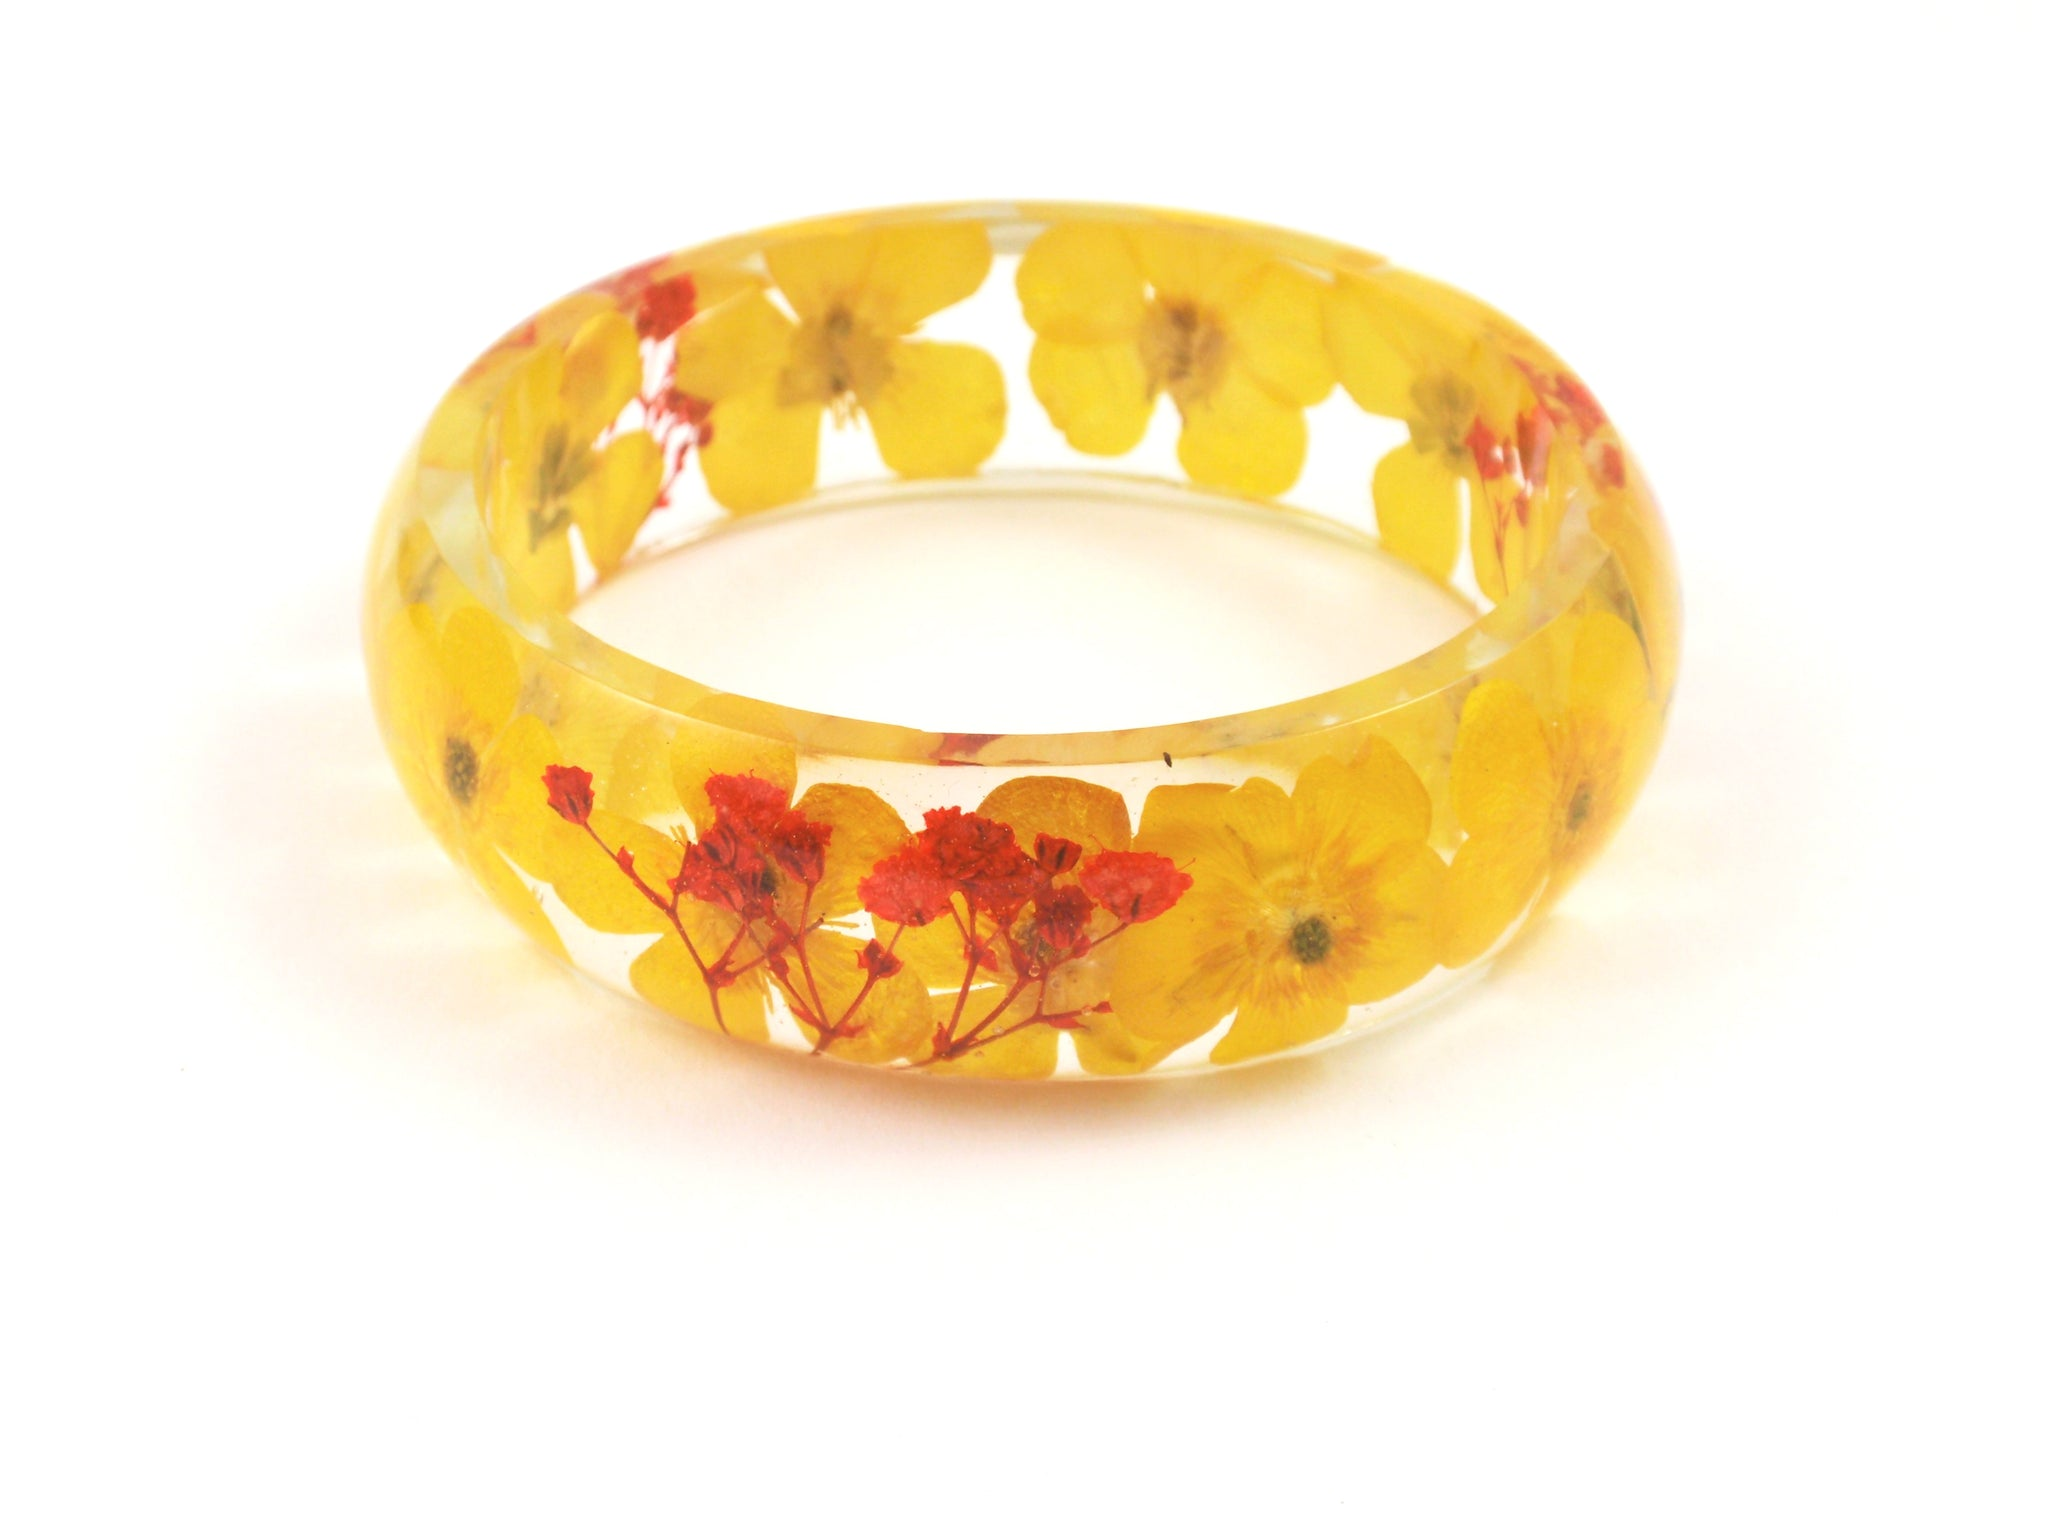 Yellow Buttercup bangle Bracelet, Resin Bracelet real flowers